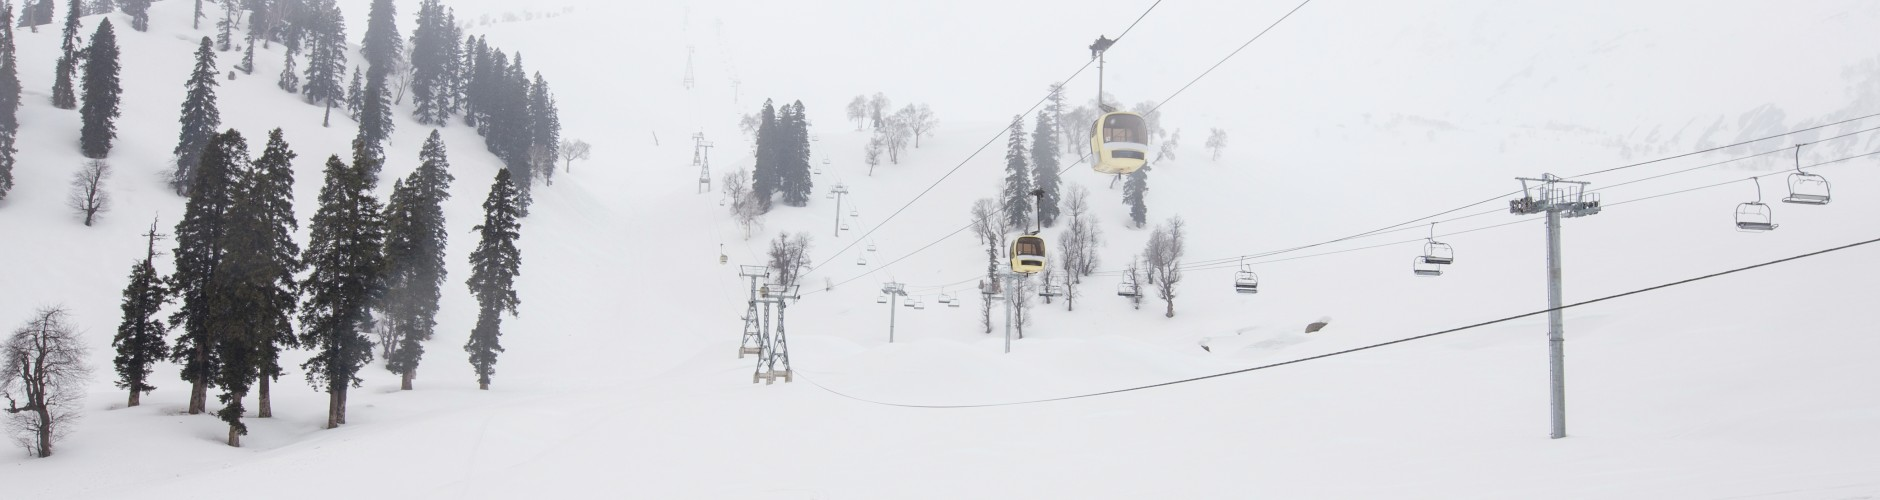 Ice mountains with few trees and two rope cars